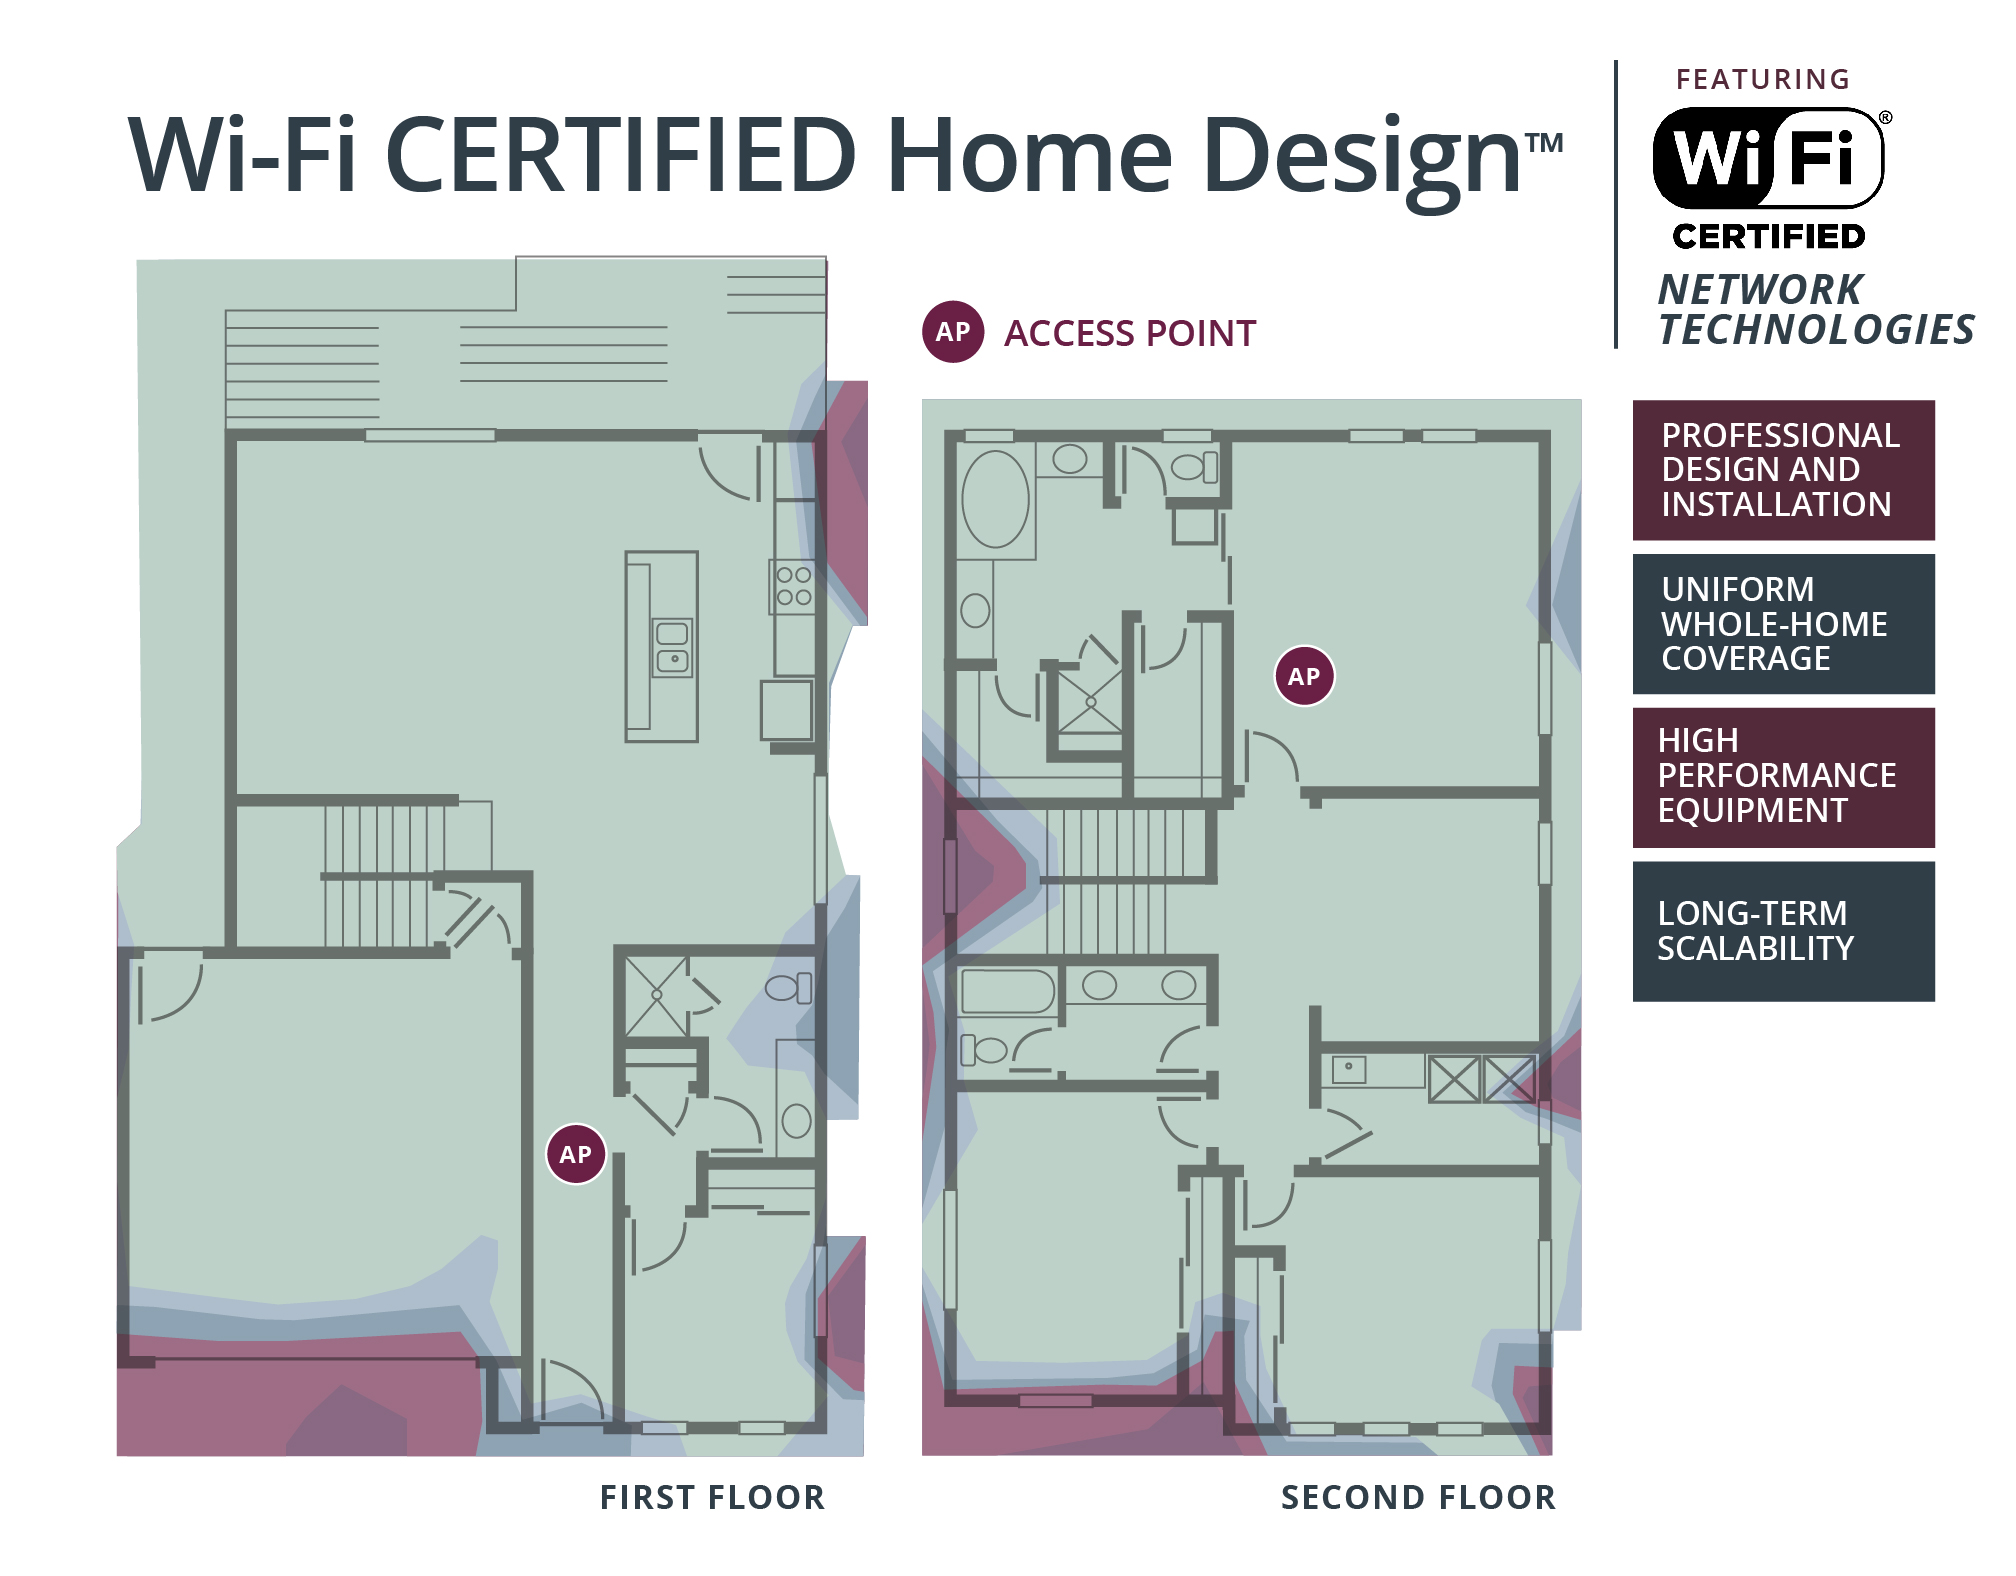 Wi Fi Home Design Not Only Enables Home Builders To Extend Their Product  Offering, It Gives Home Buyers Convenience, Peace Of Mind, And Exceptional  User ...